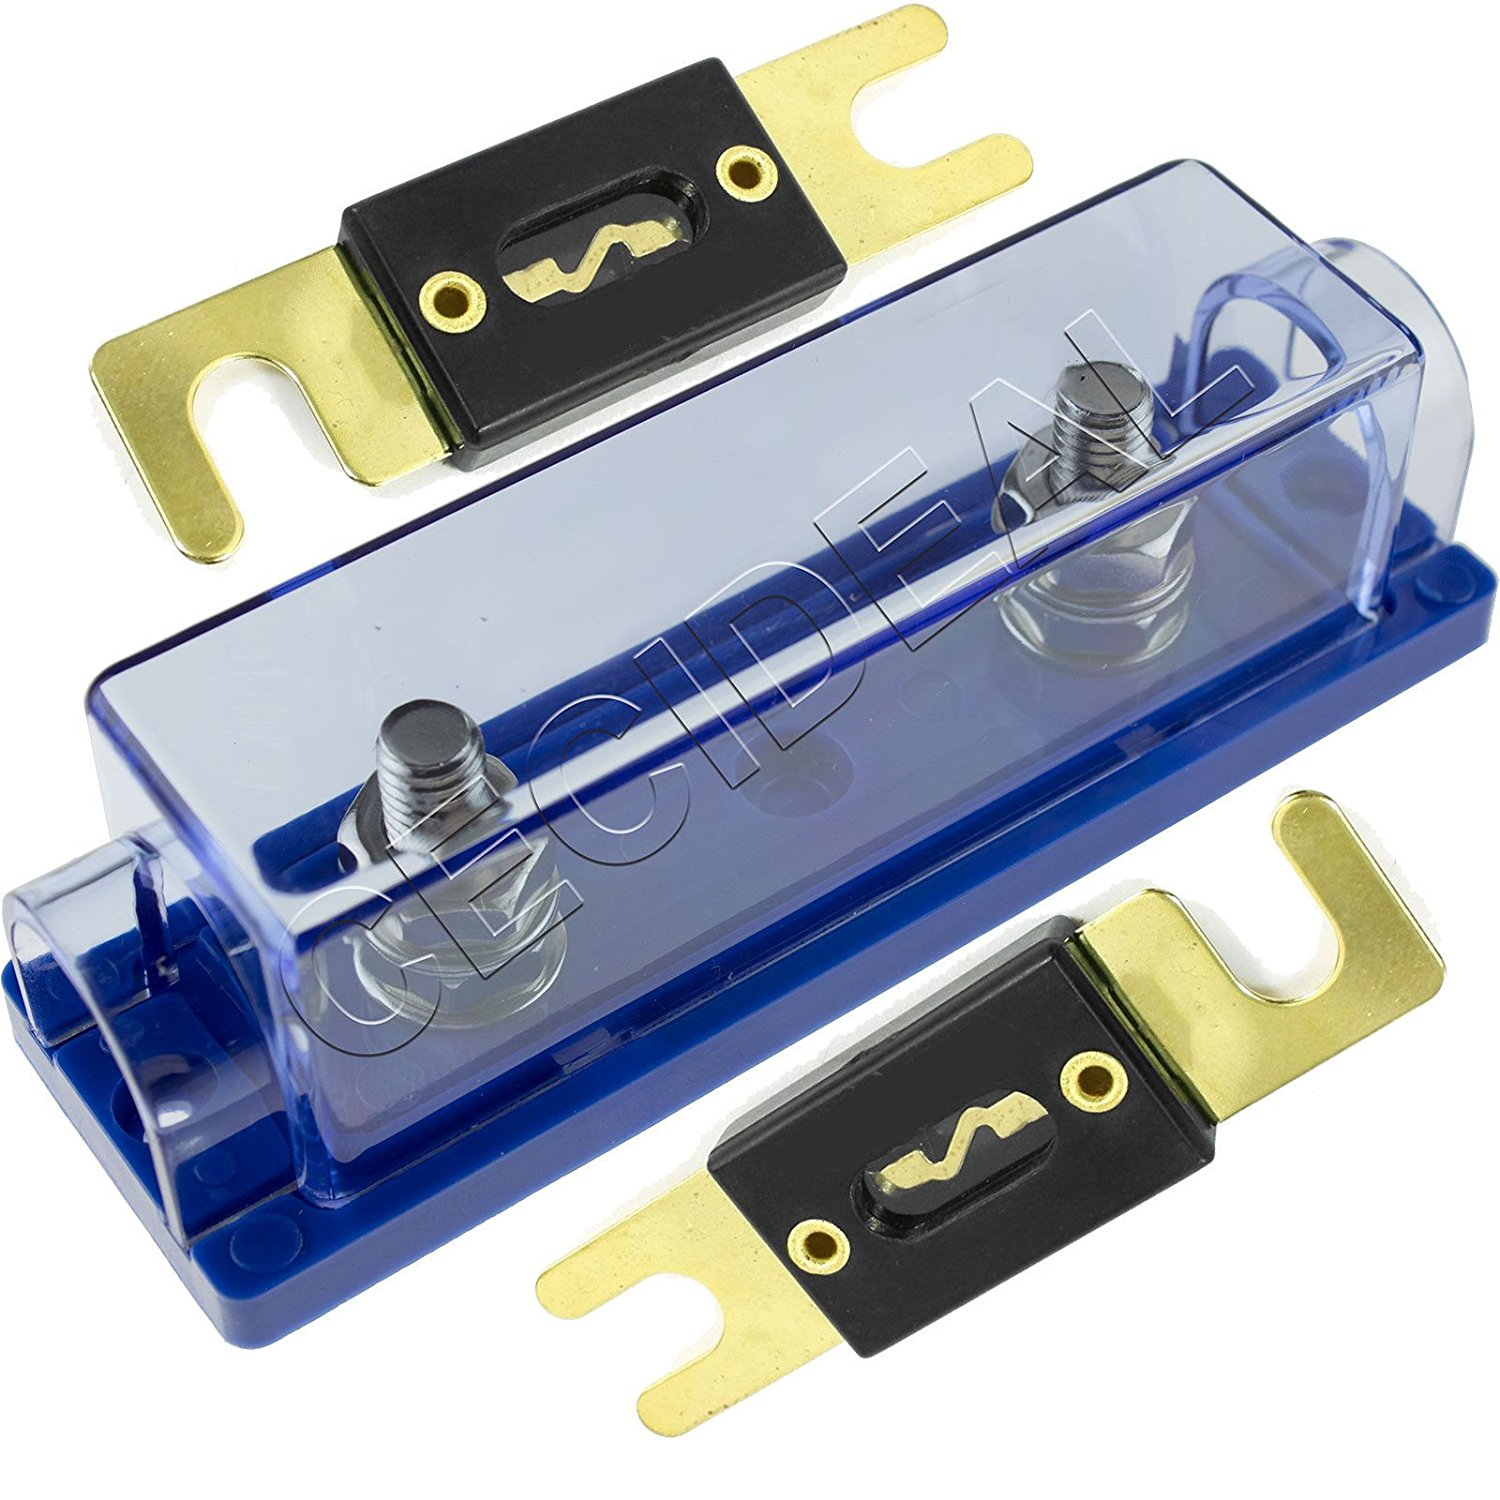 Cheap 3 Amp Fuse Holder Find Deals On Line At 150 Box Get Quotations 1 0 4 8 Gauge Anl 2 Pack Gold